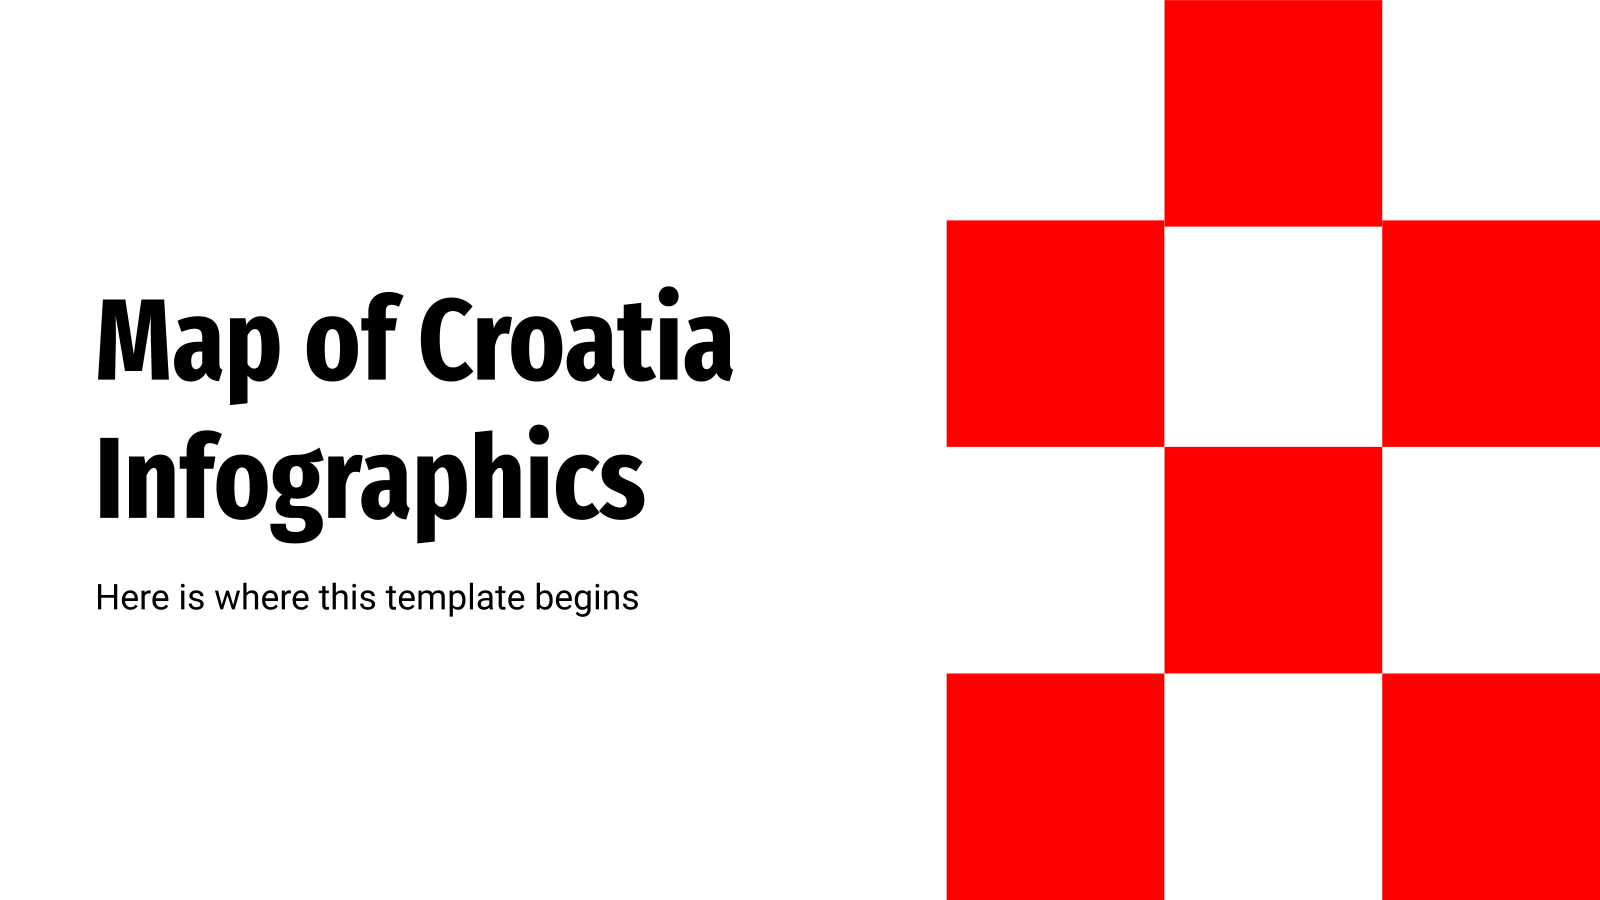 Map of Croatia Infographics presentation template